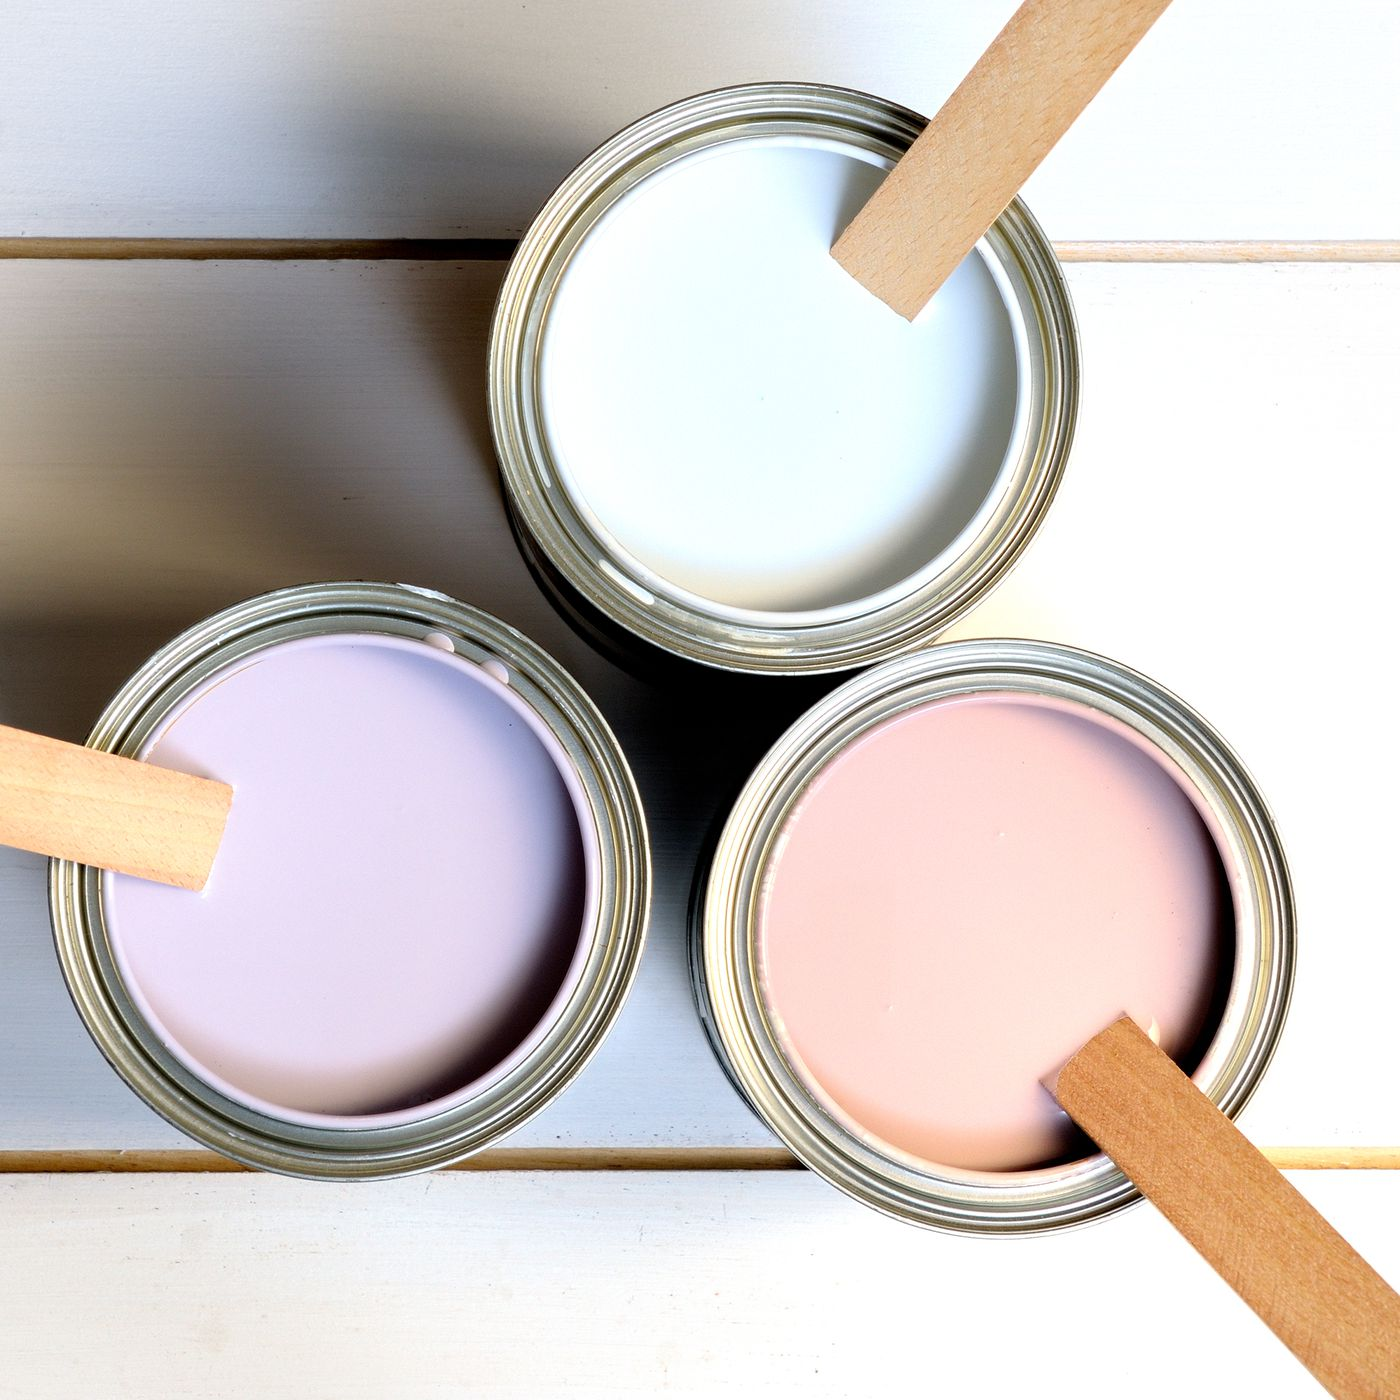 24 Tips To Help You Paint Trim And Walls Like A Pro This Old House